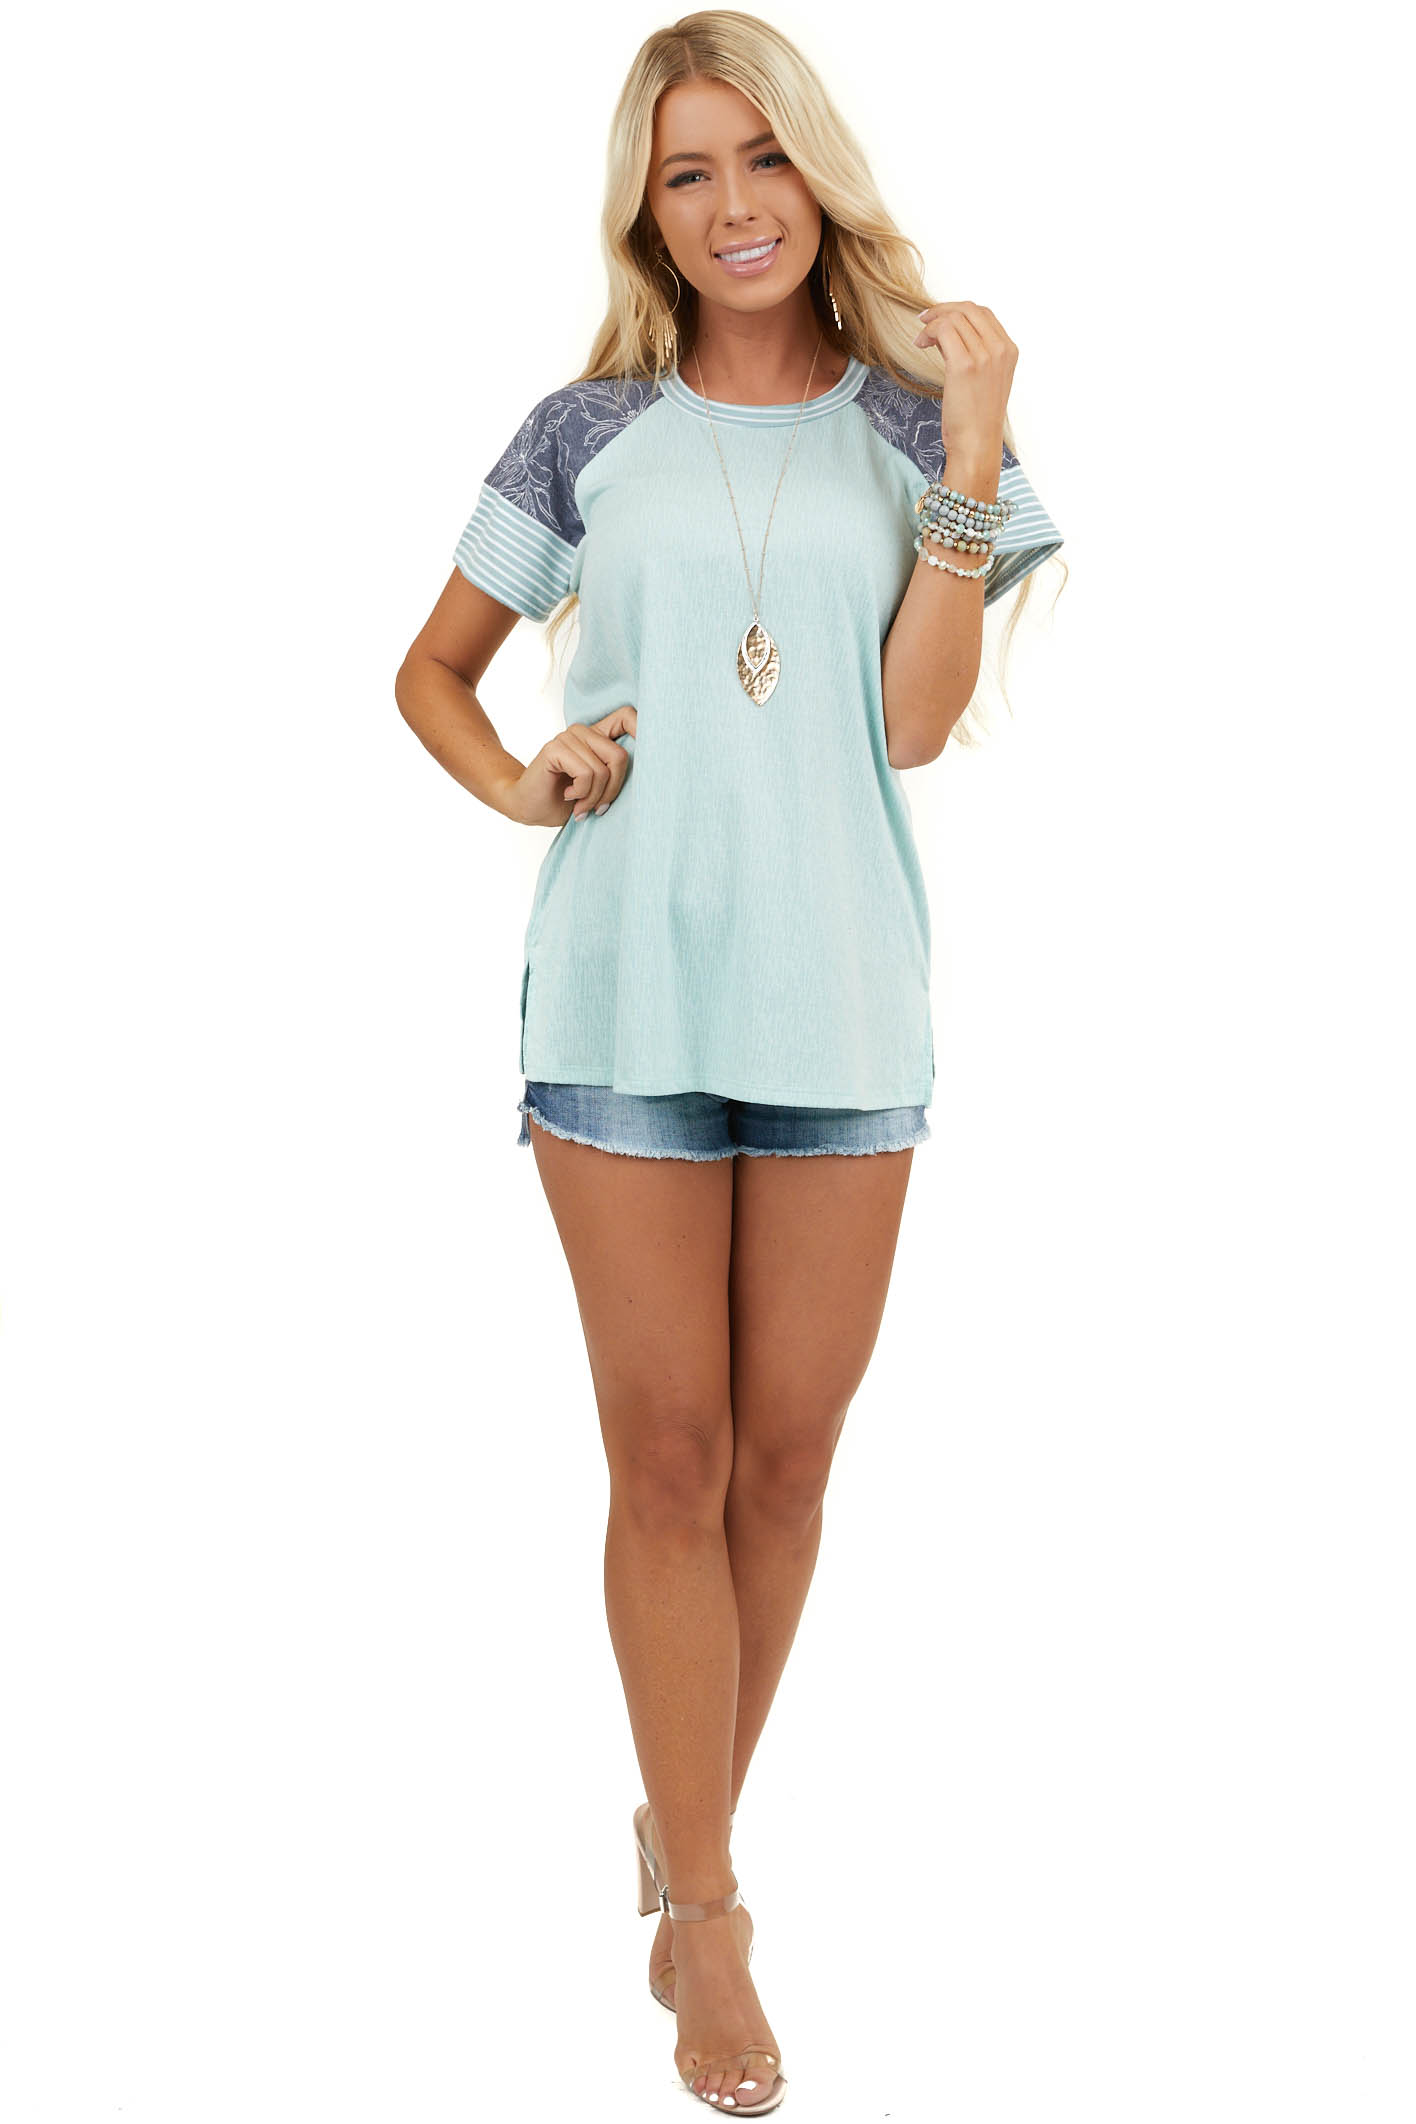 Mint Textured Short Sleeve Top with Navy Patterned Sleeves